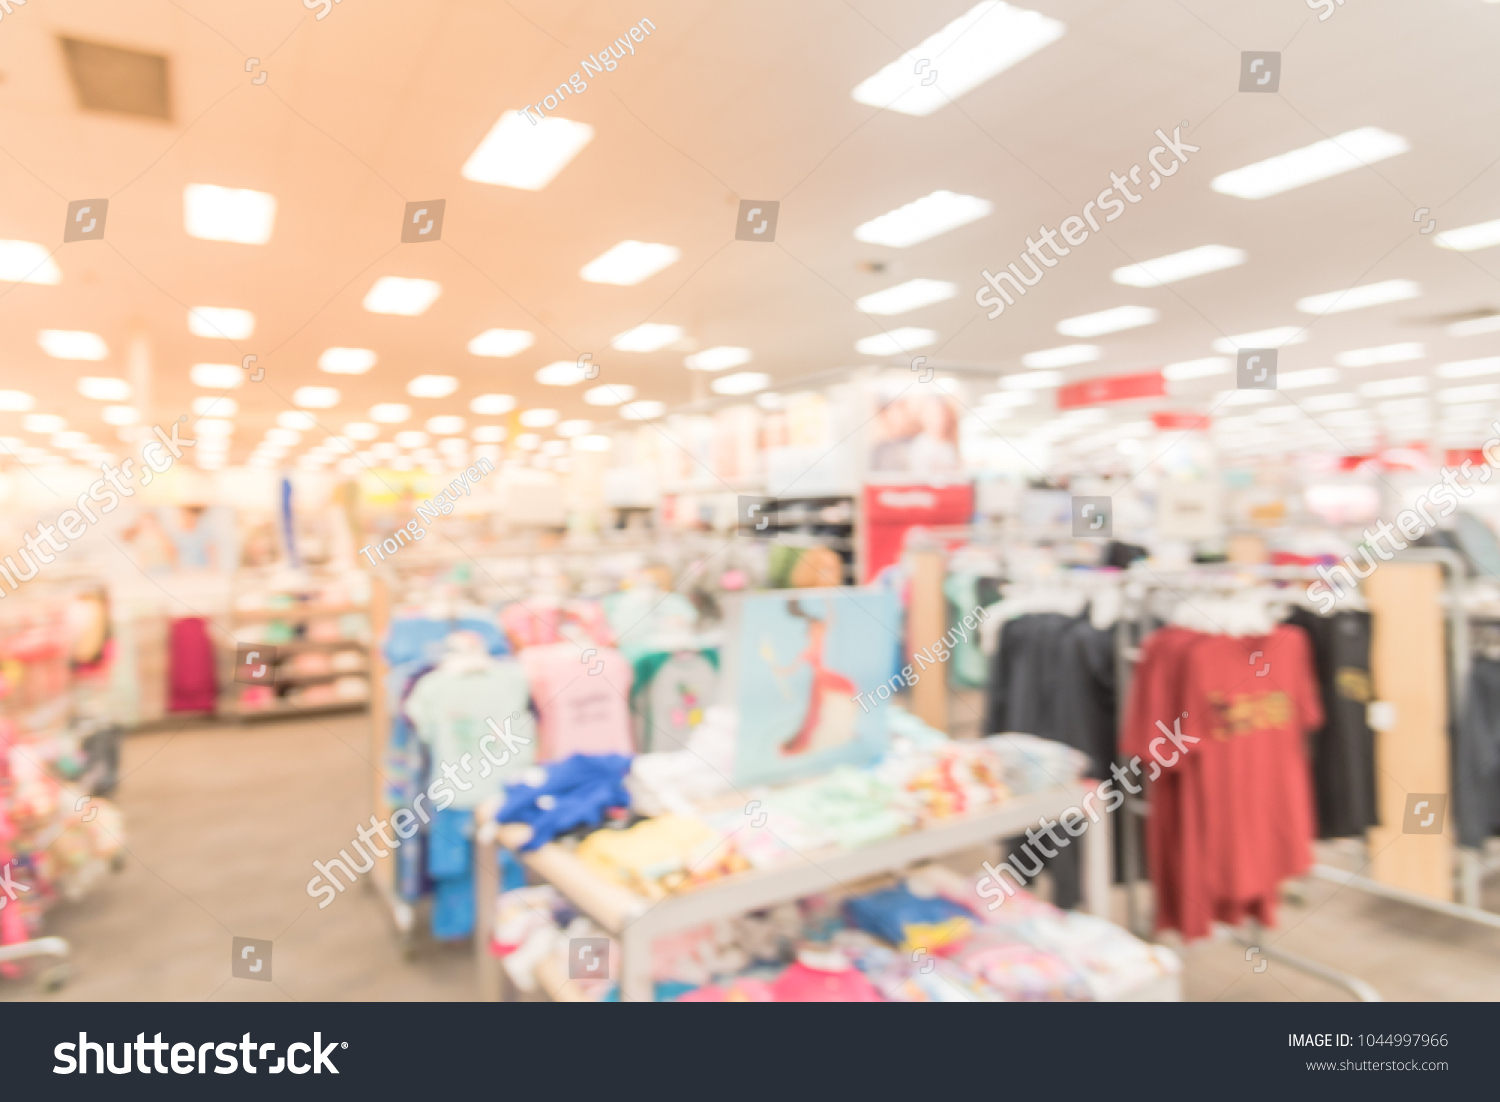 0d3dadf62 Blurred women and kids clothing department at discount store retailer in  America. Low prices fashion